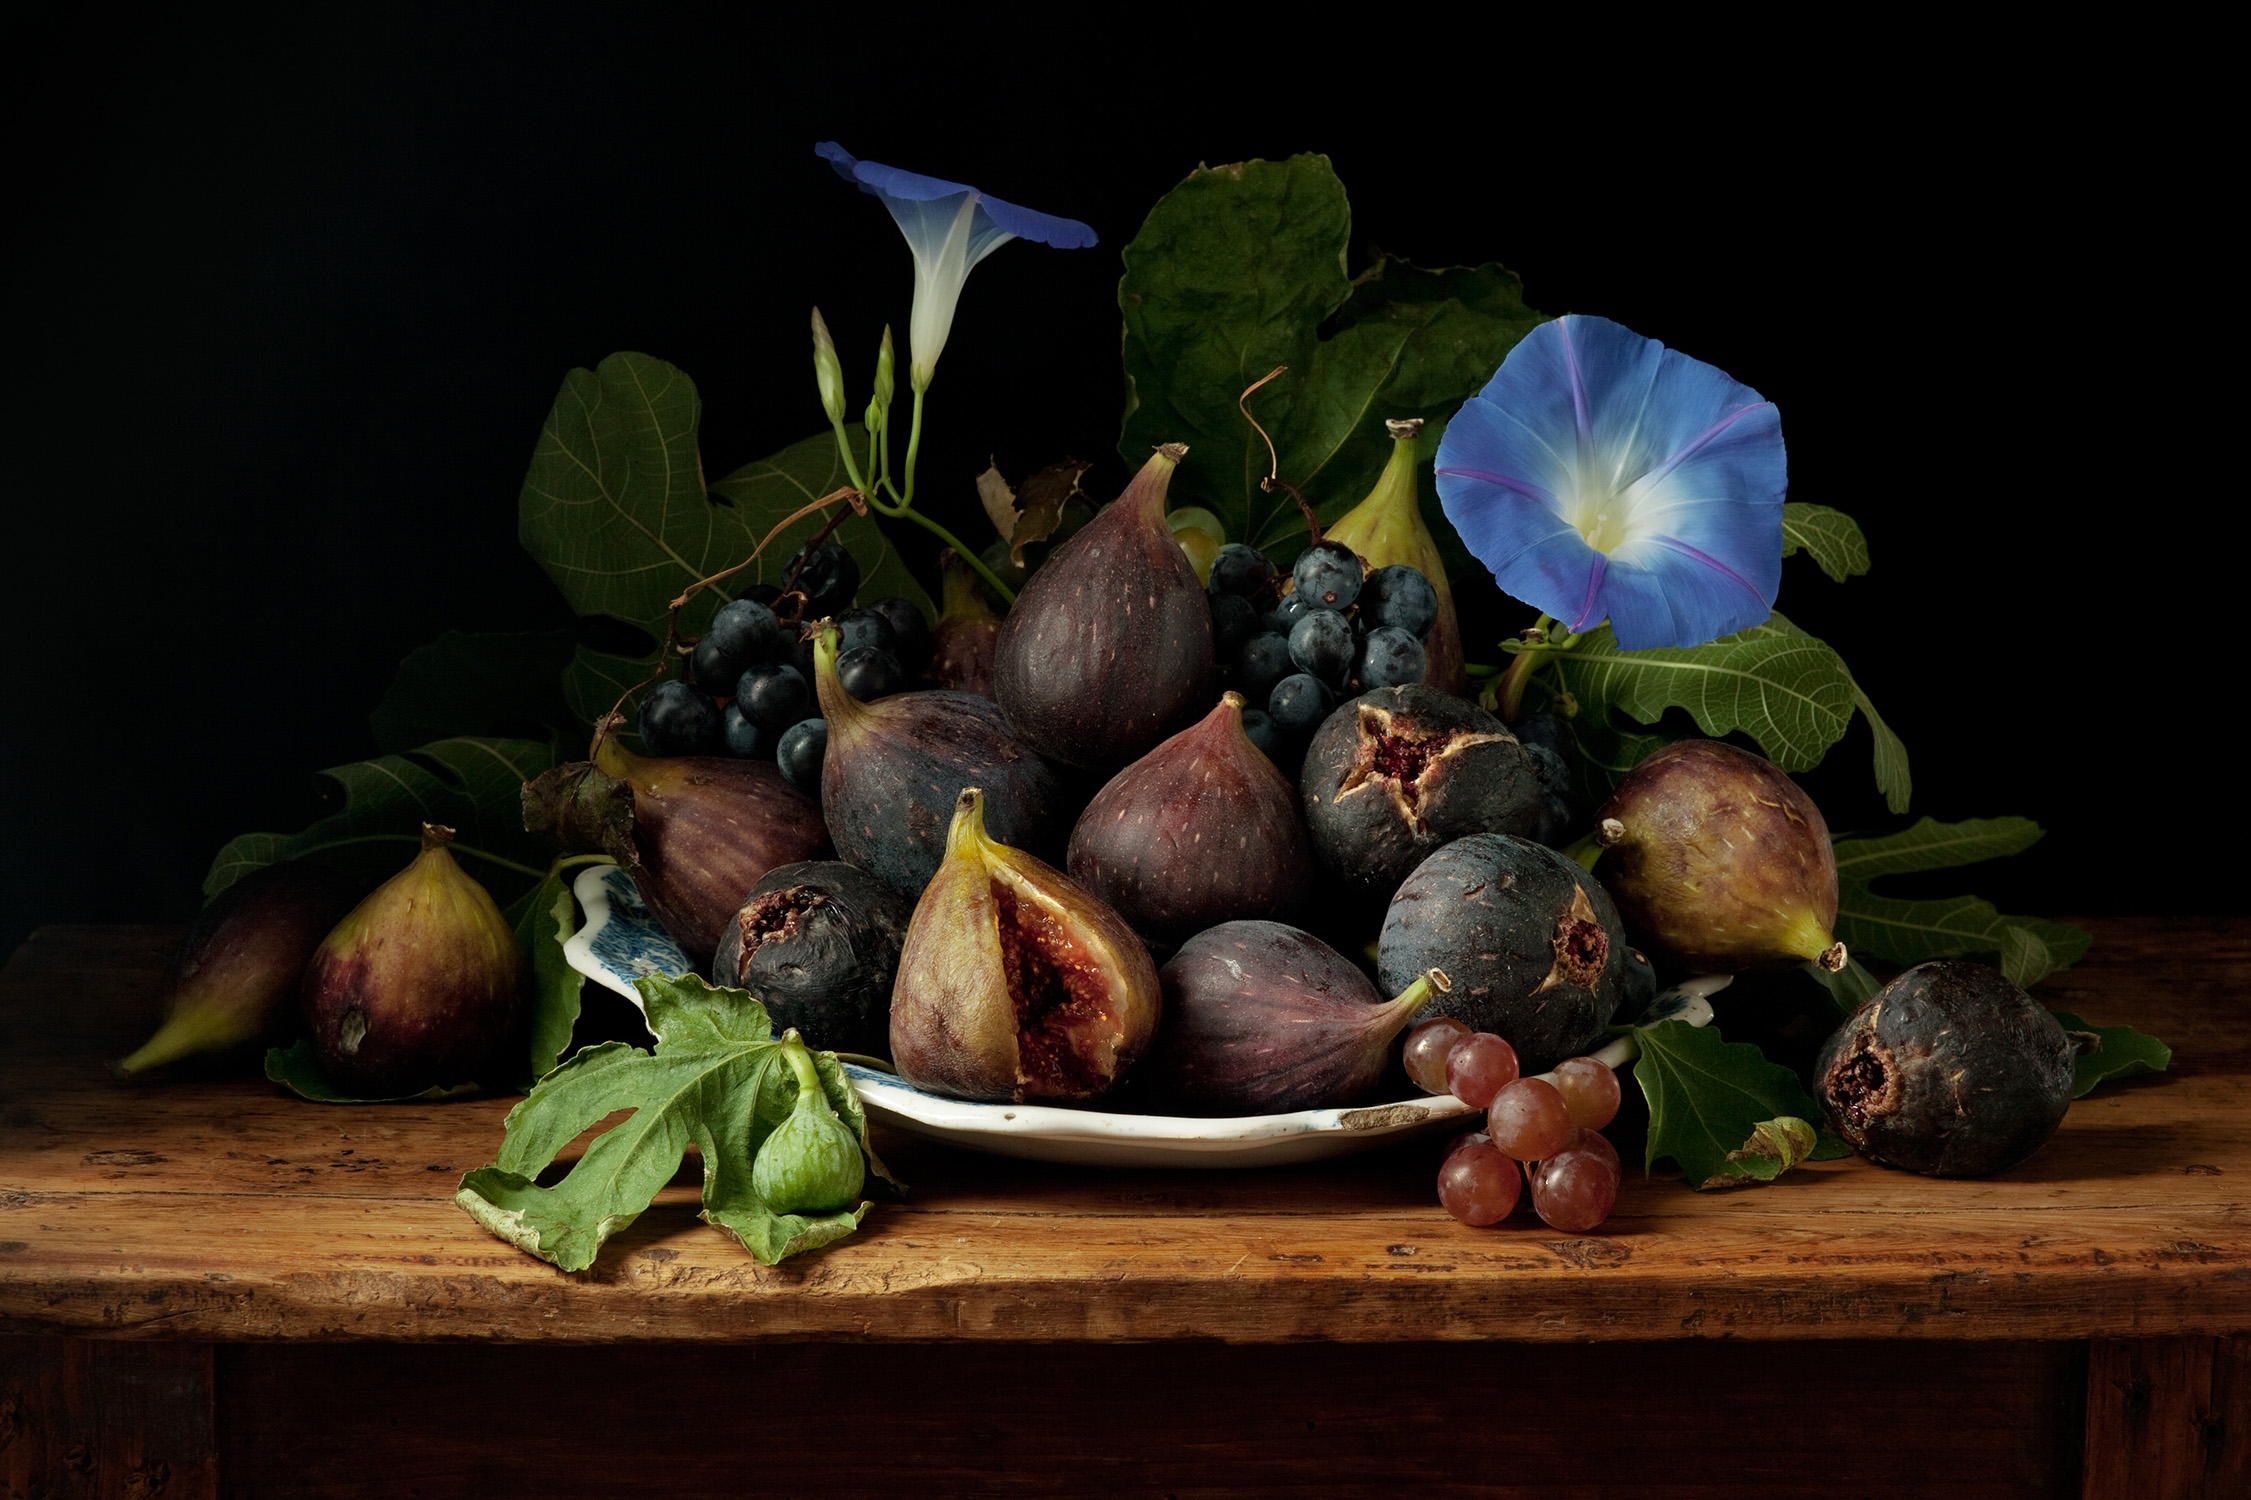 Figs and Morning Glories, After G.G., 2010